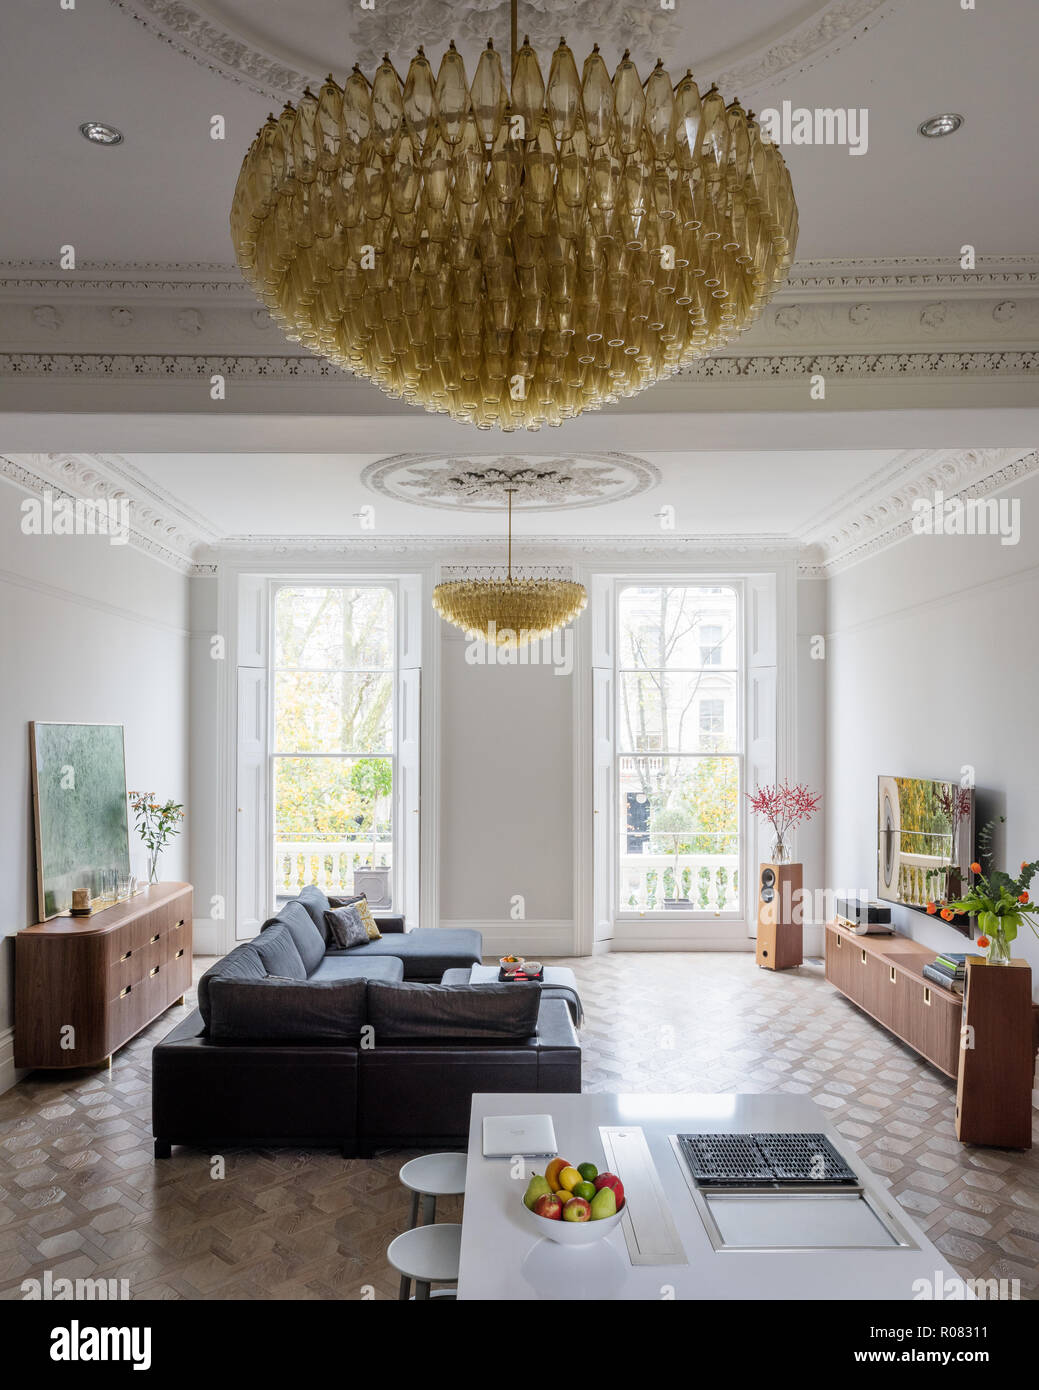 Modern open plan living area with chandelier Stock Photo